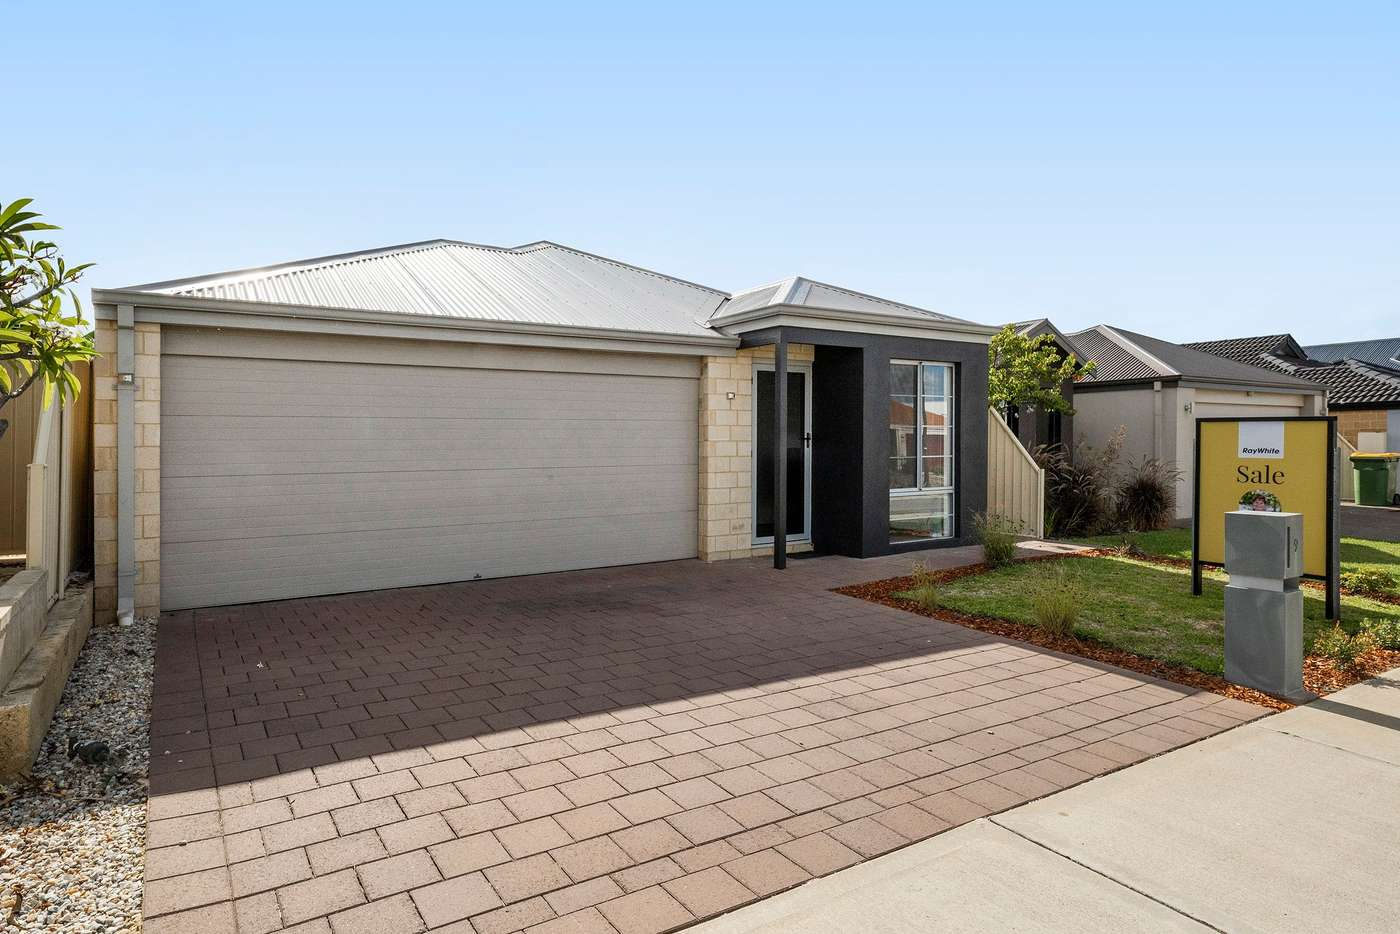 Main view of Homely house listing, 9 Pipistrelle Avenue, Baldivis WA 6171